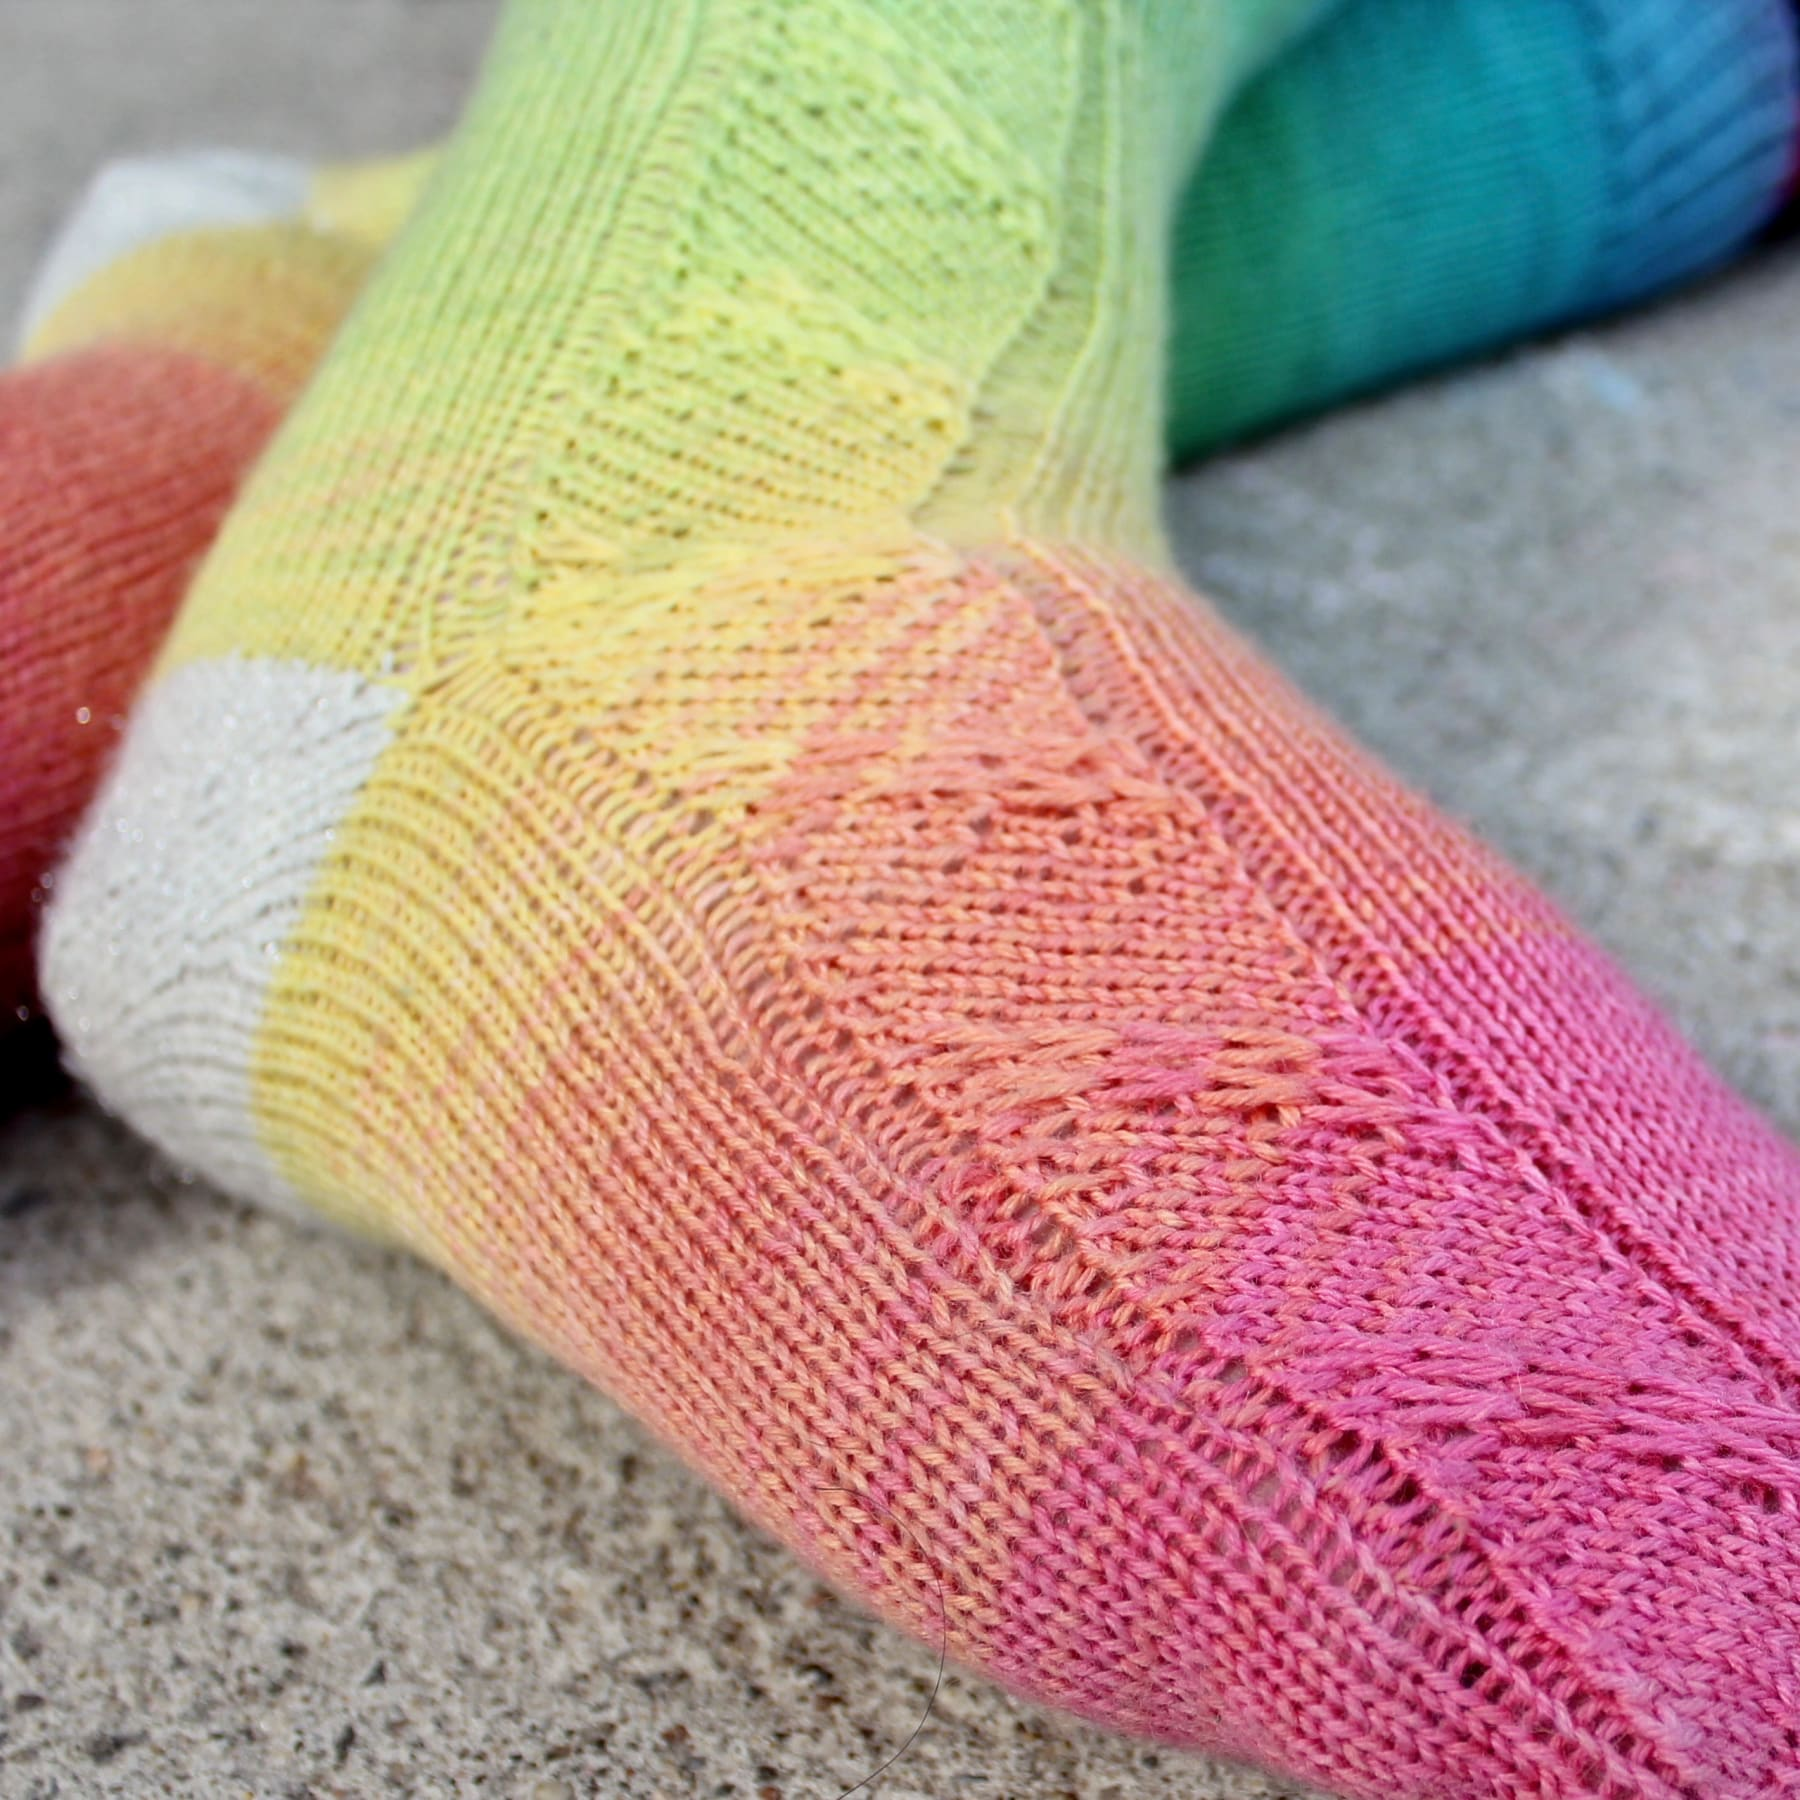 Closeup of feet wearing rainbow socks with diagonal slipped-stitch panel and sparkly white heels.